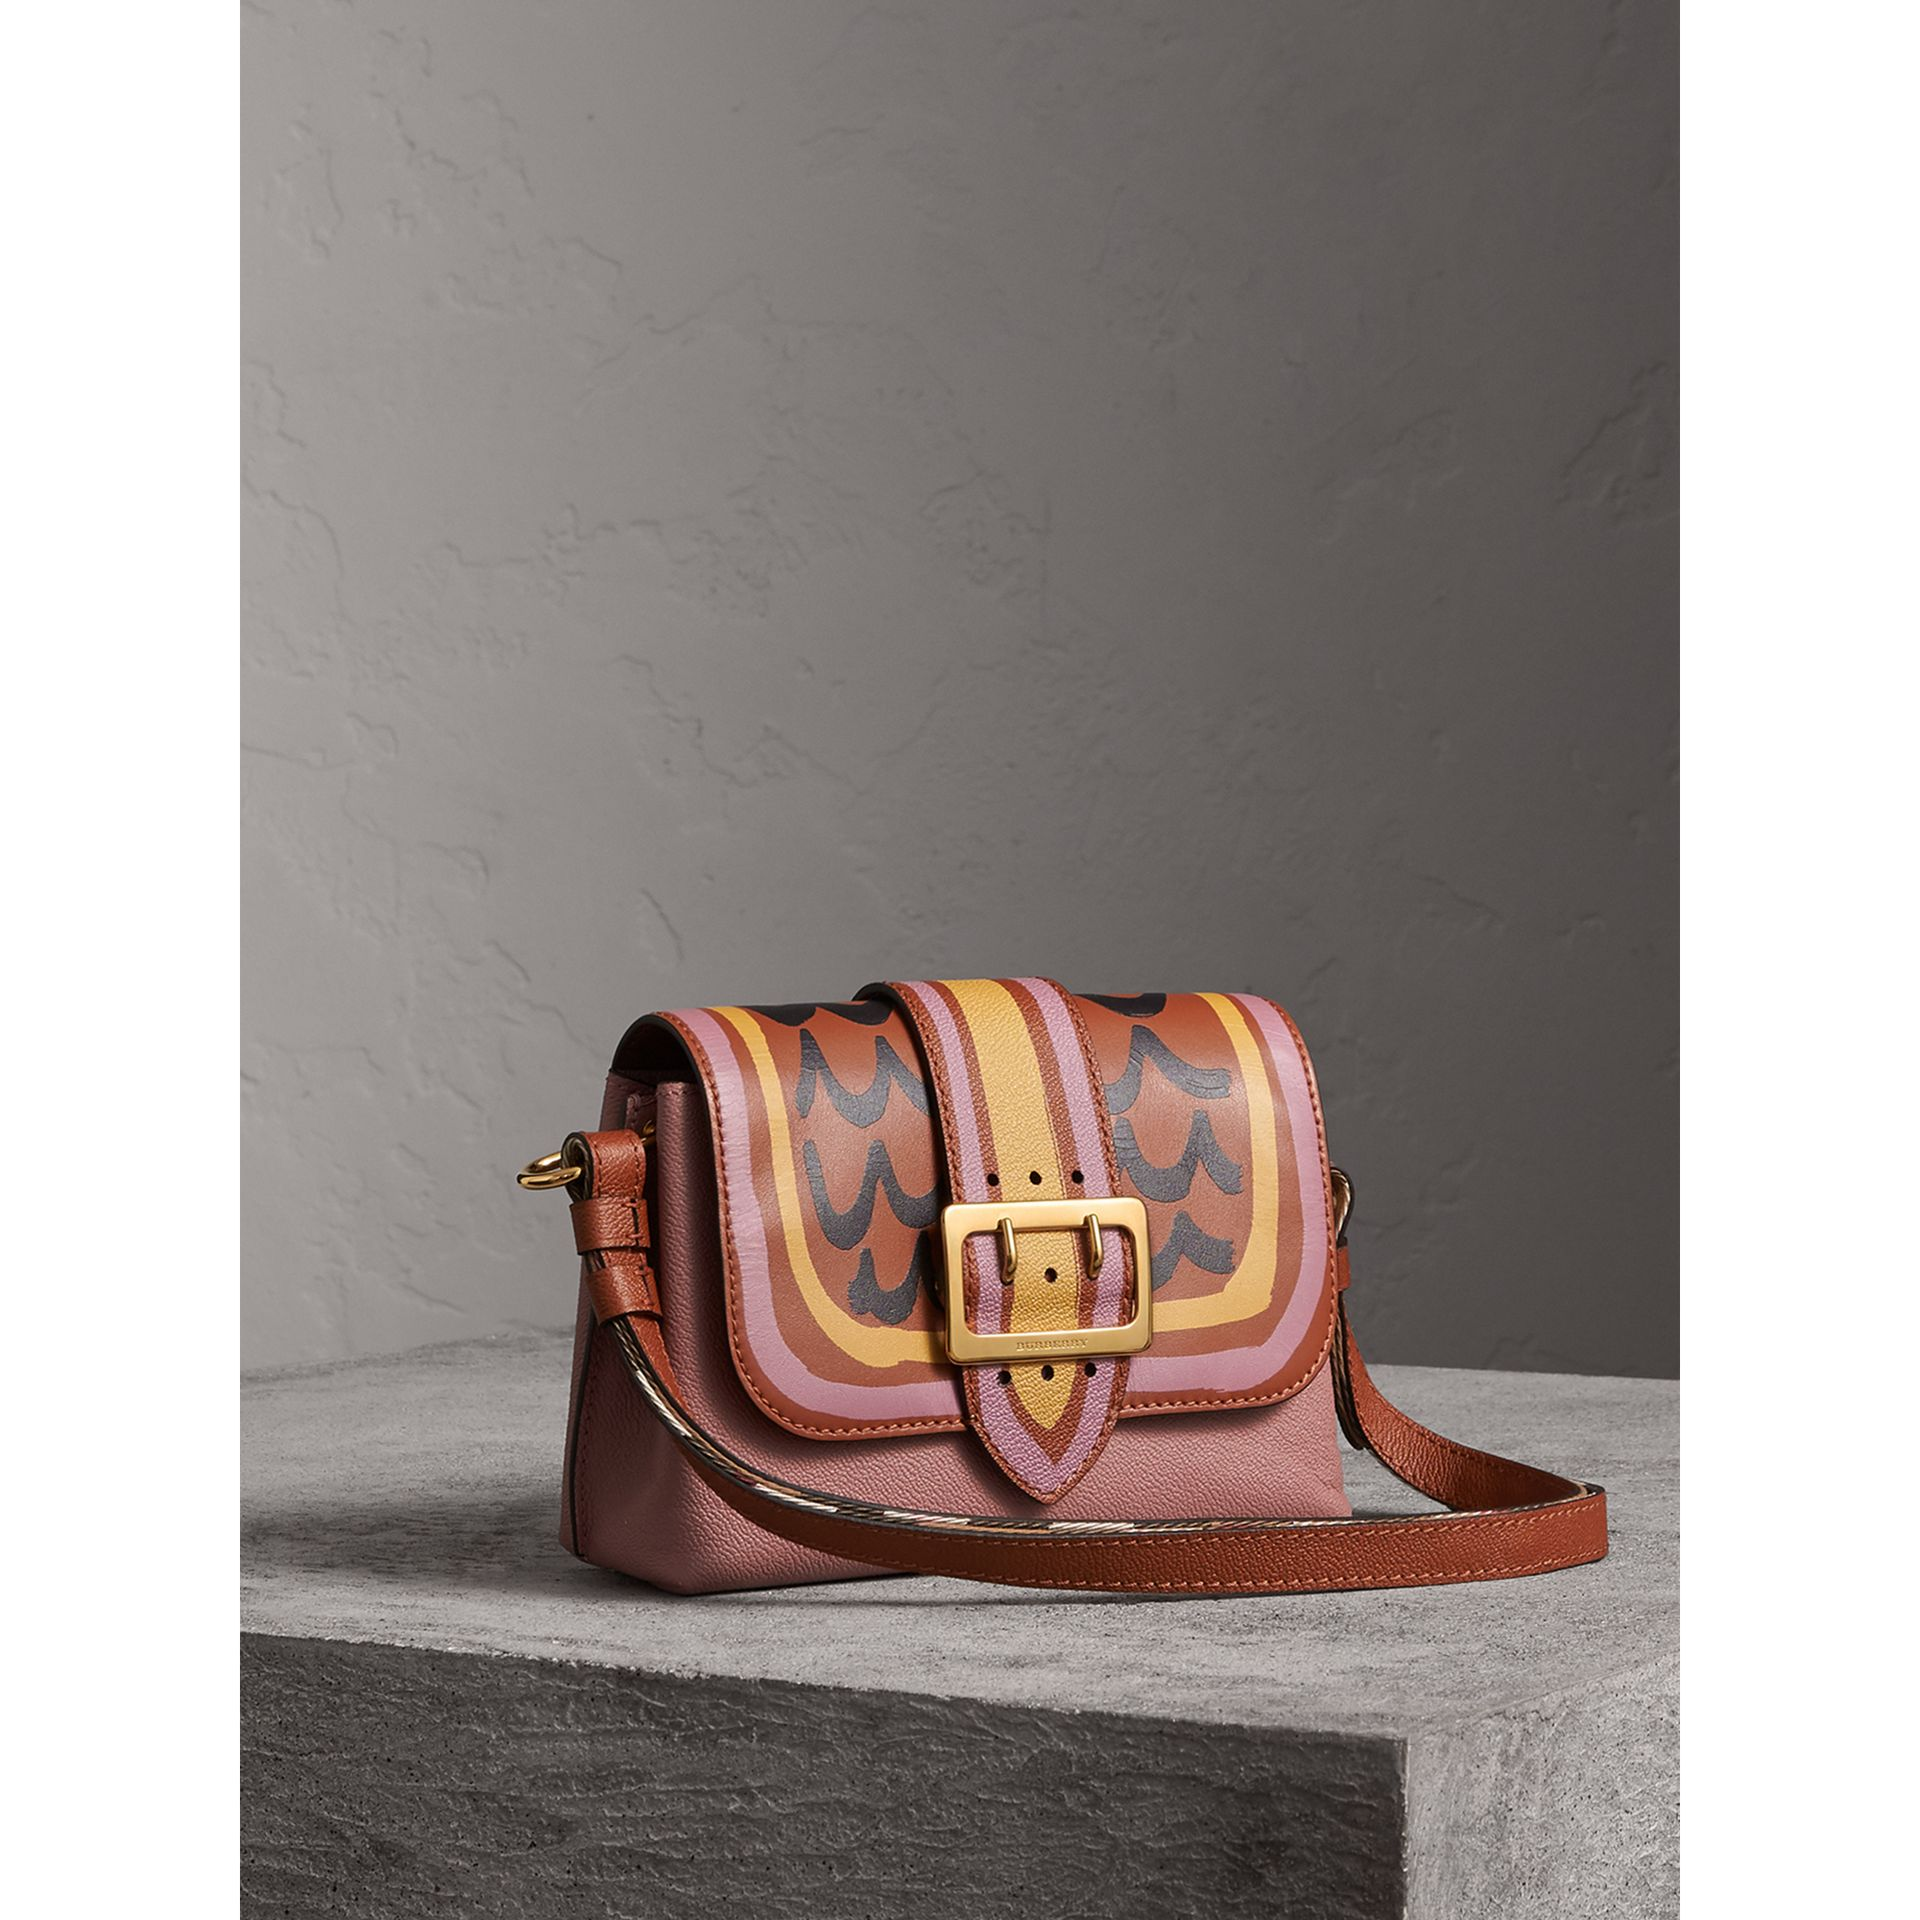 The Buckle Crossbody Bag in Trompe L'oeil Leather in Dusty Pink/bright Toffee - Women | Burberry Canada - gallery image 6